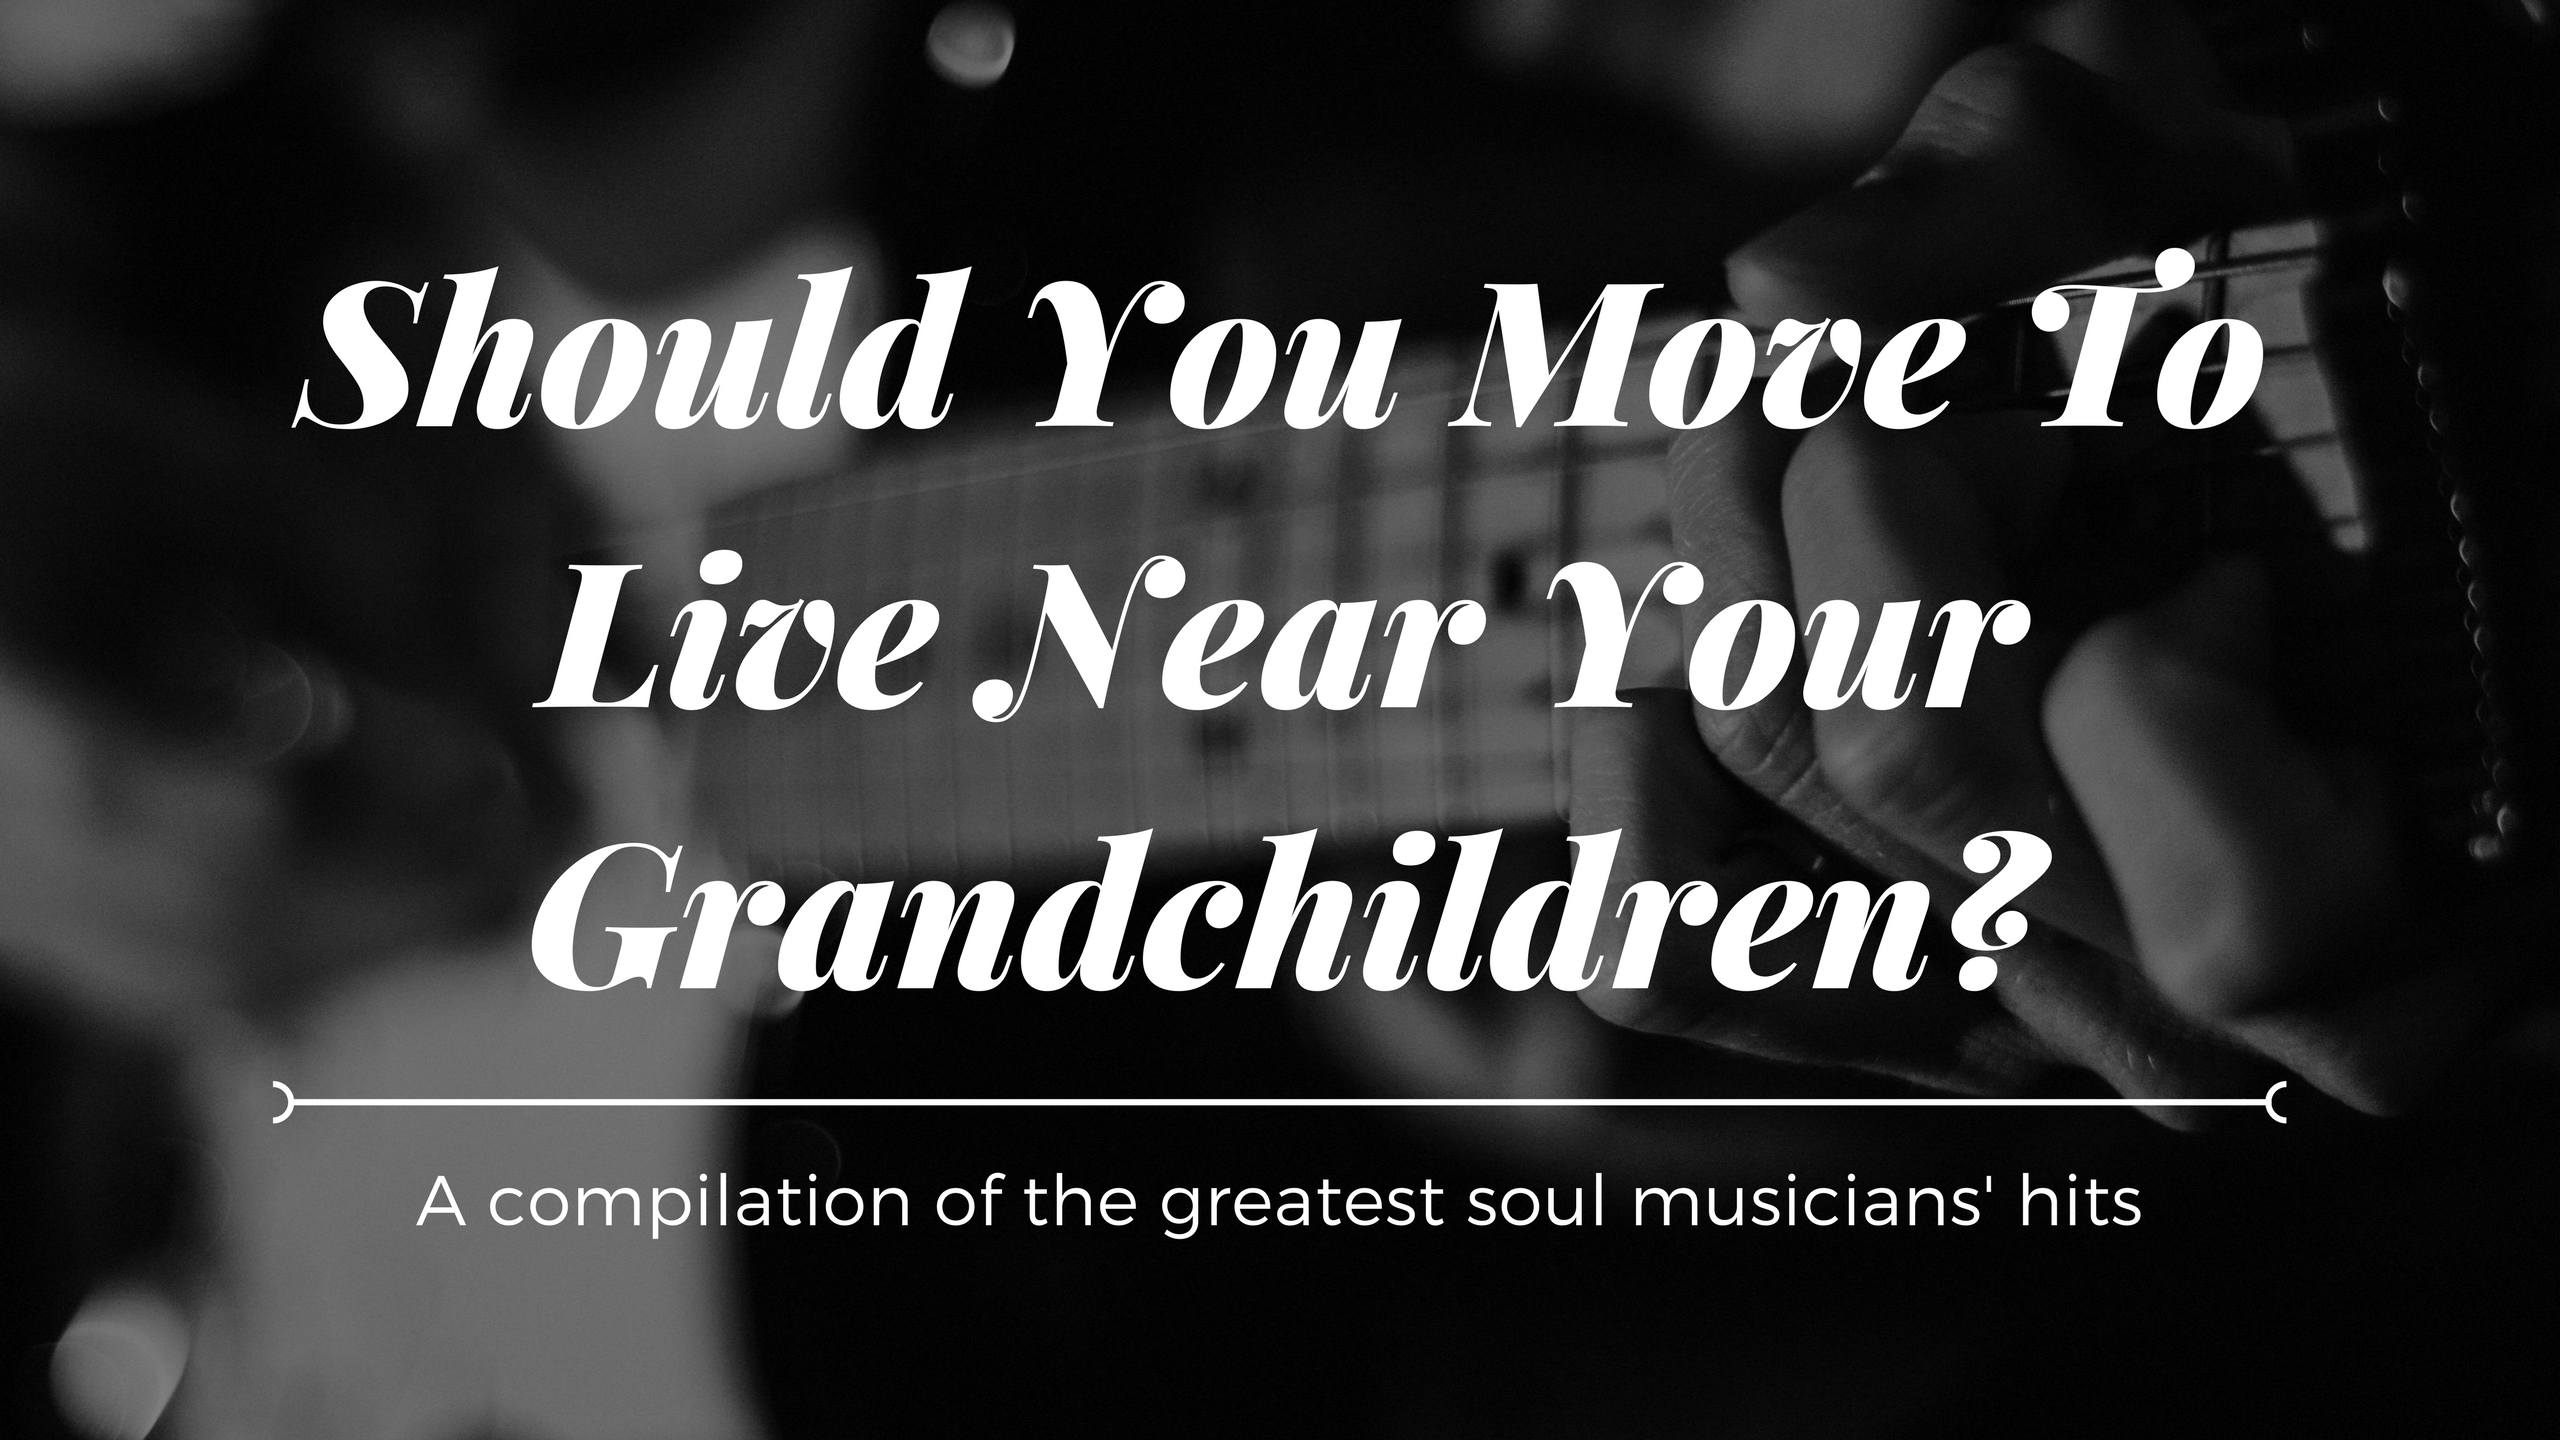 Live Near Your Grandchildren